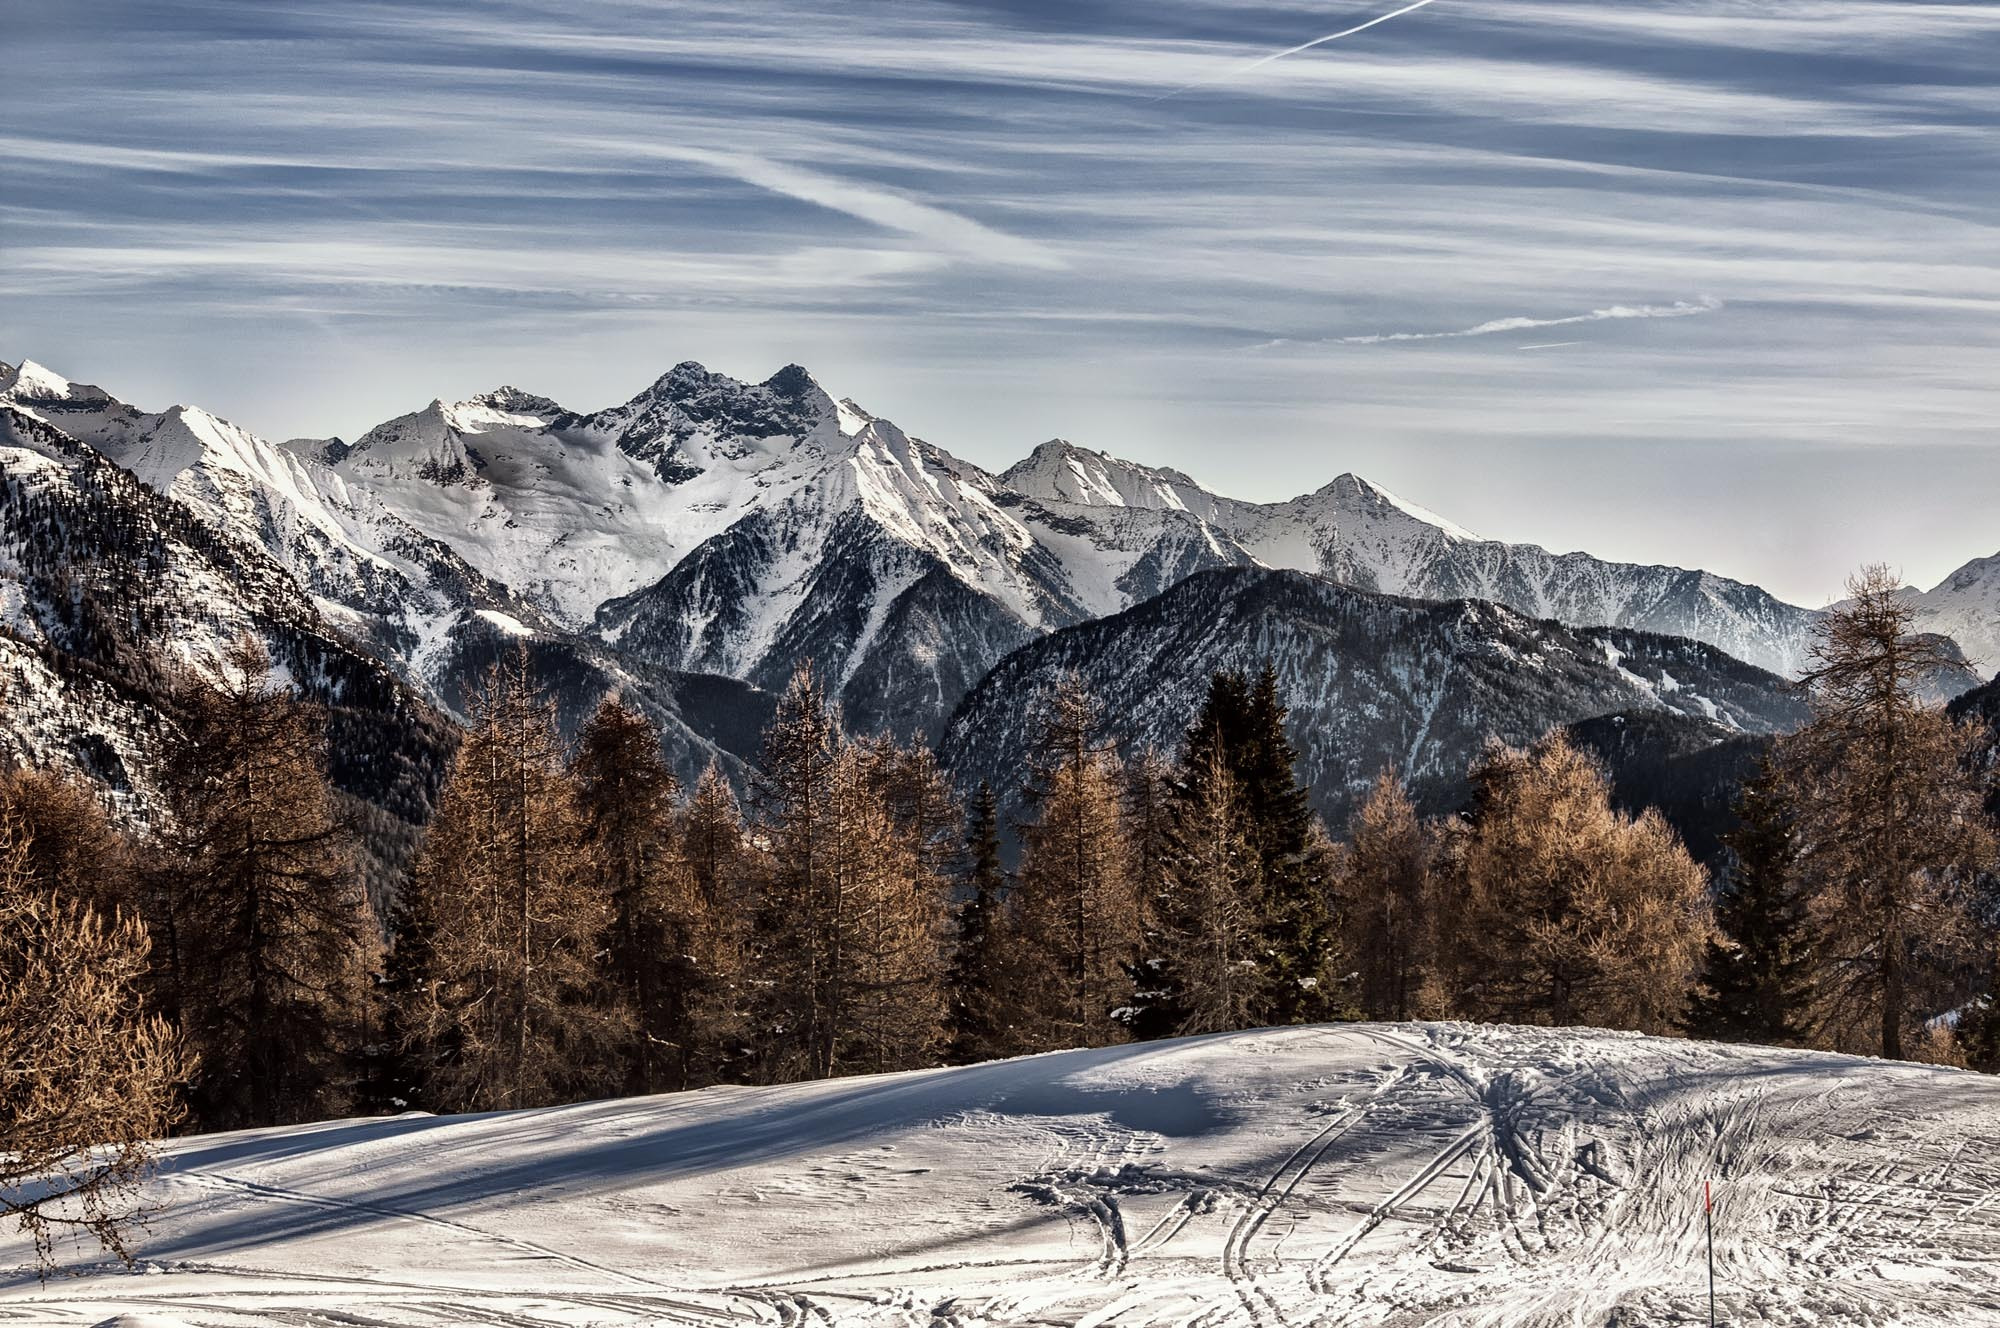 Photograph Untitled by Andrea Facco on 500px